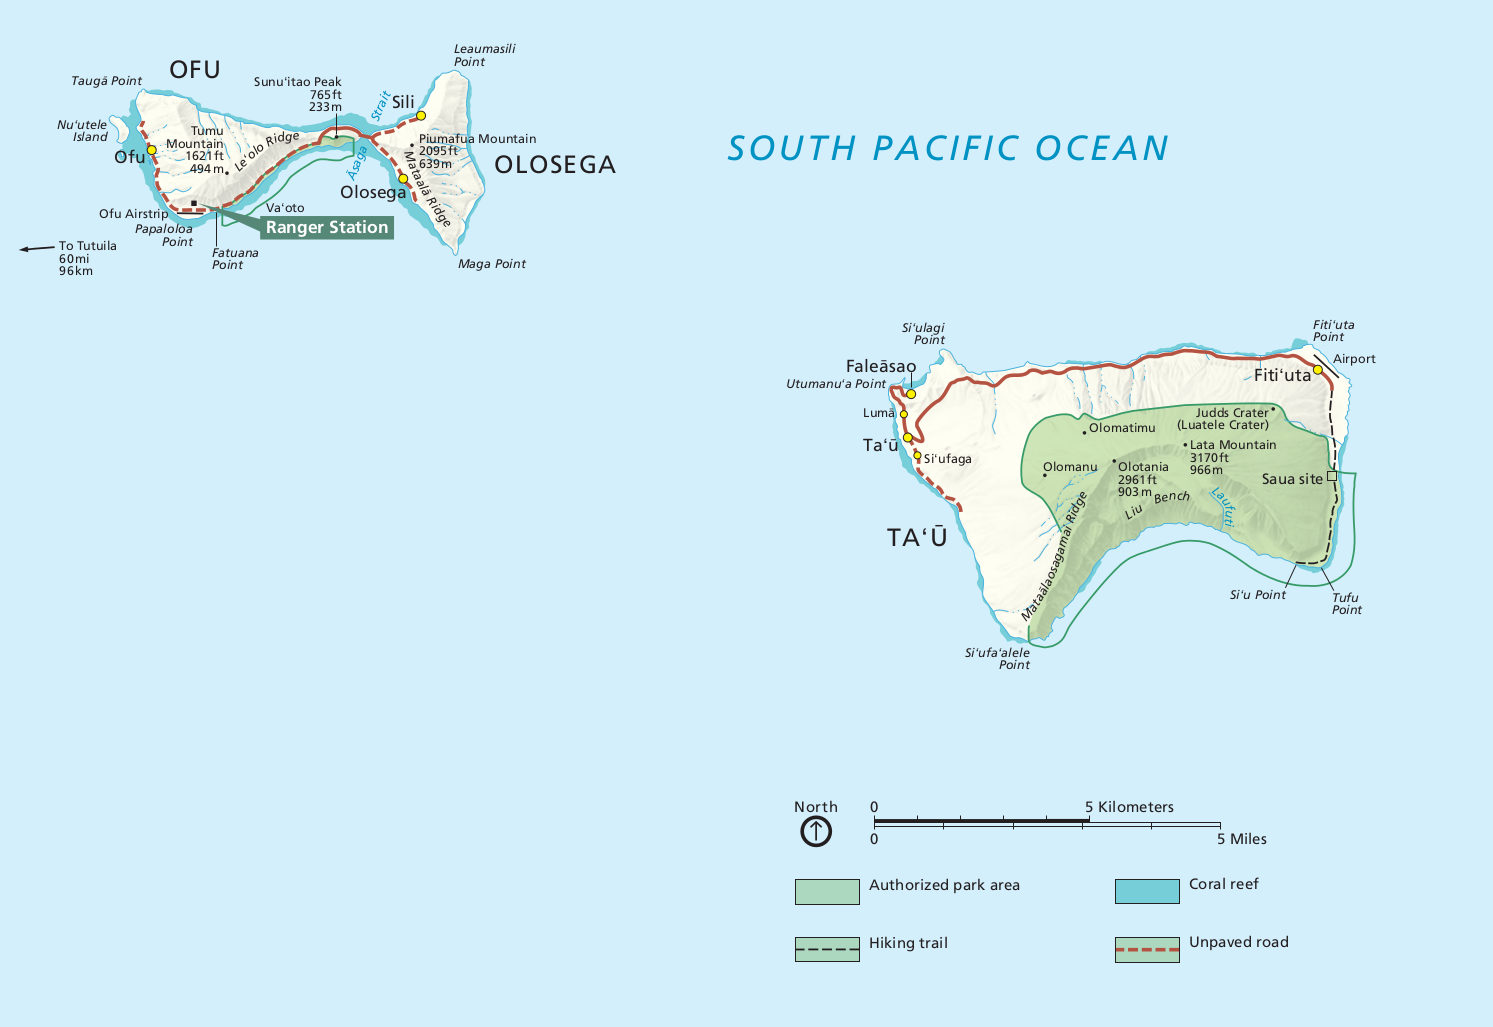 American Samoa Maps | NPMaps.com - just free maps, period.